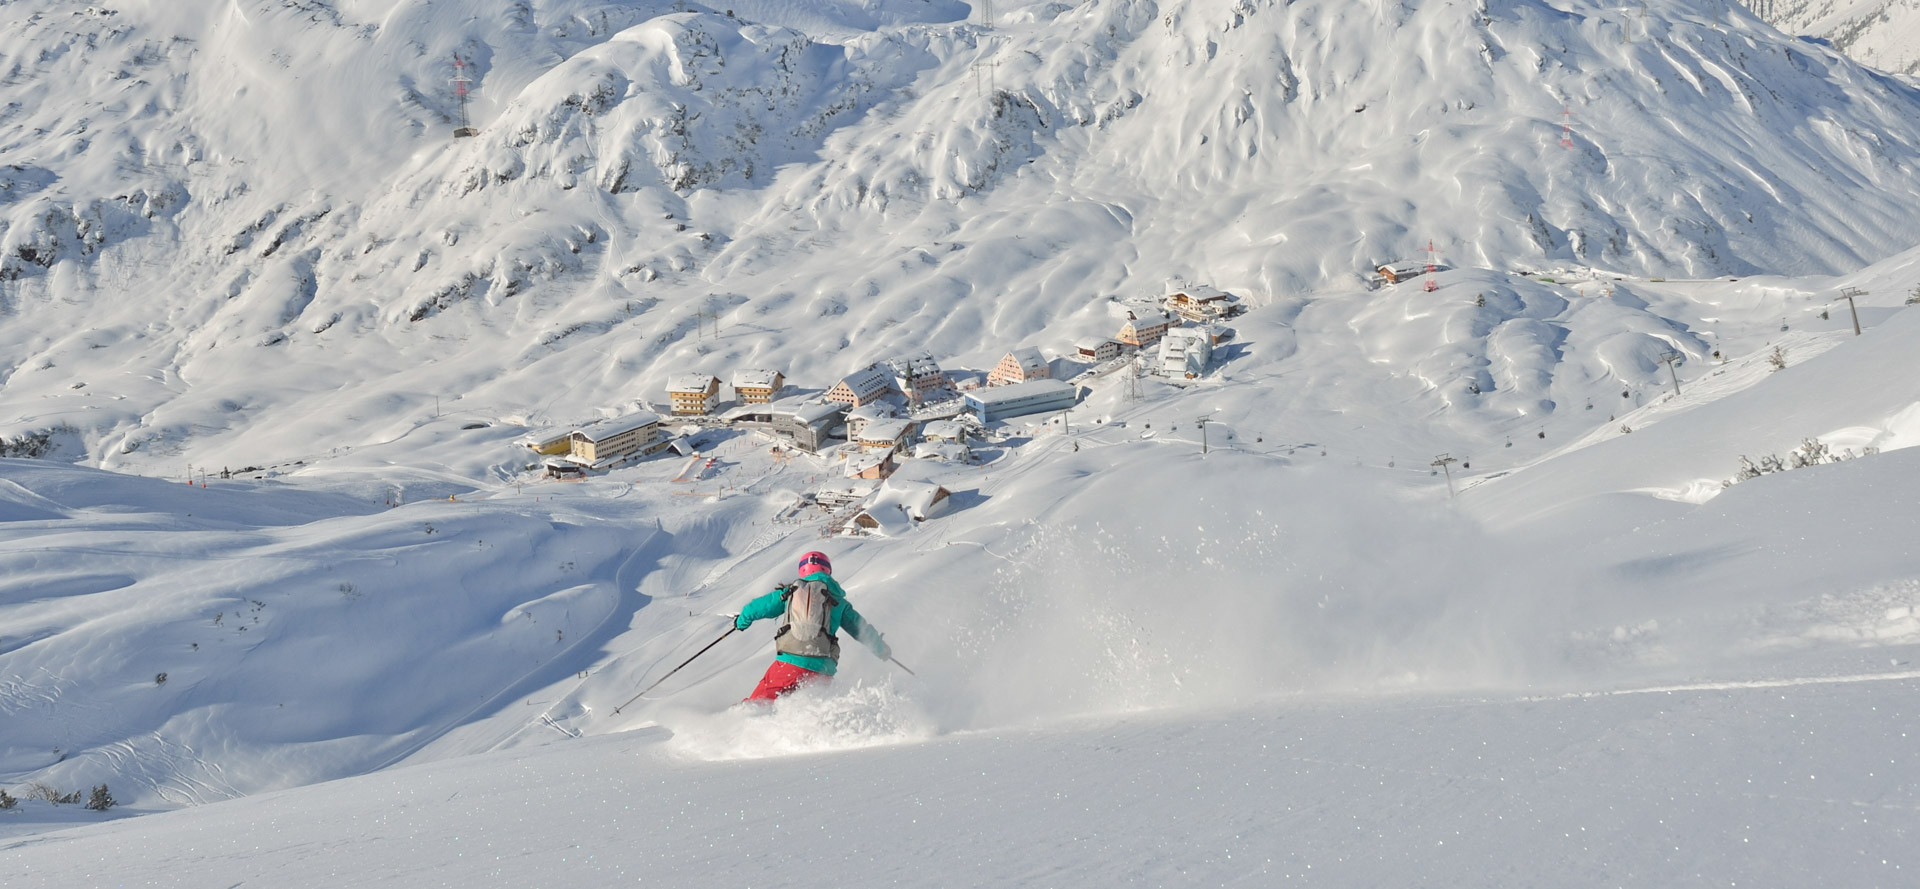 A skier in a green jacket enjoys an off-piste ski lesson on her way back towards the village of St Christophe